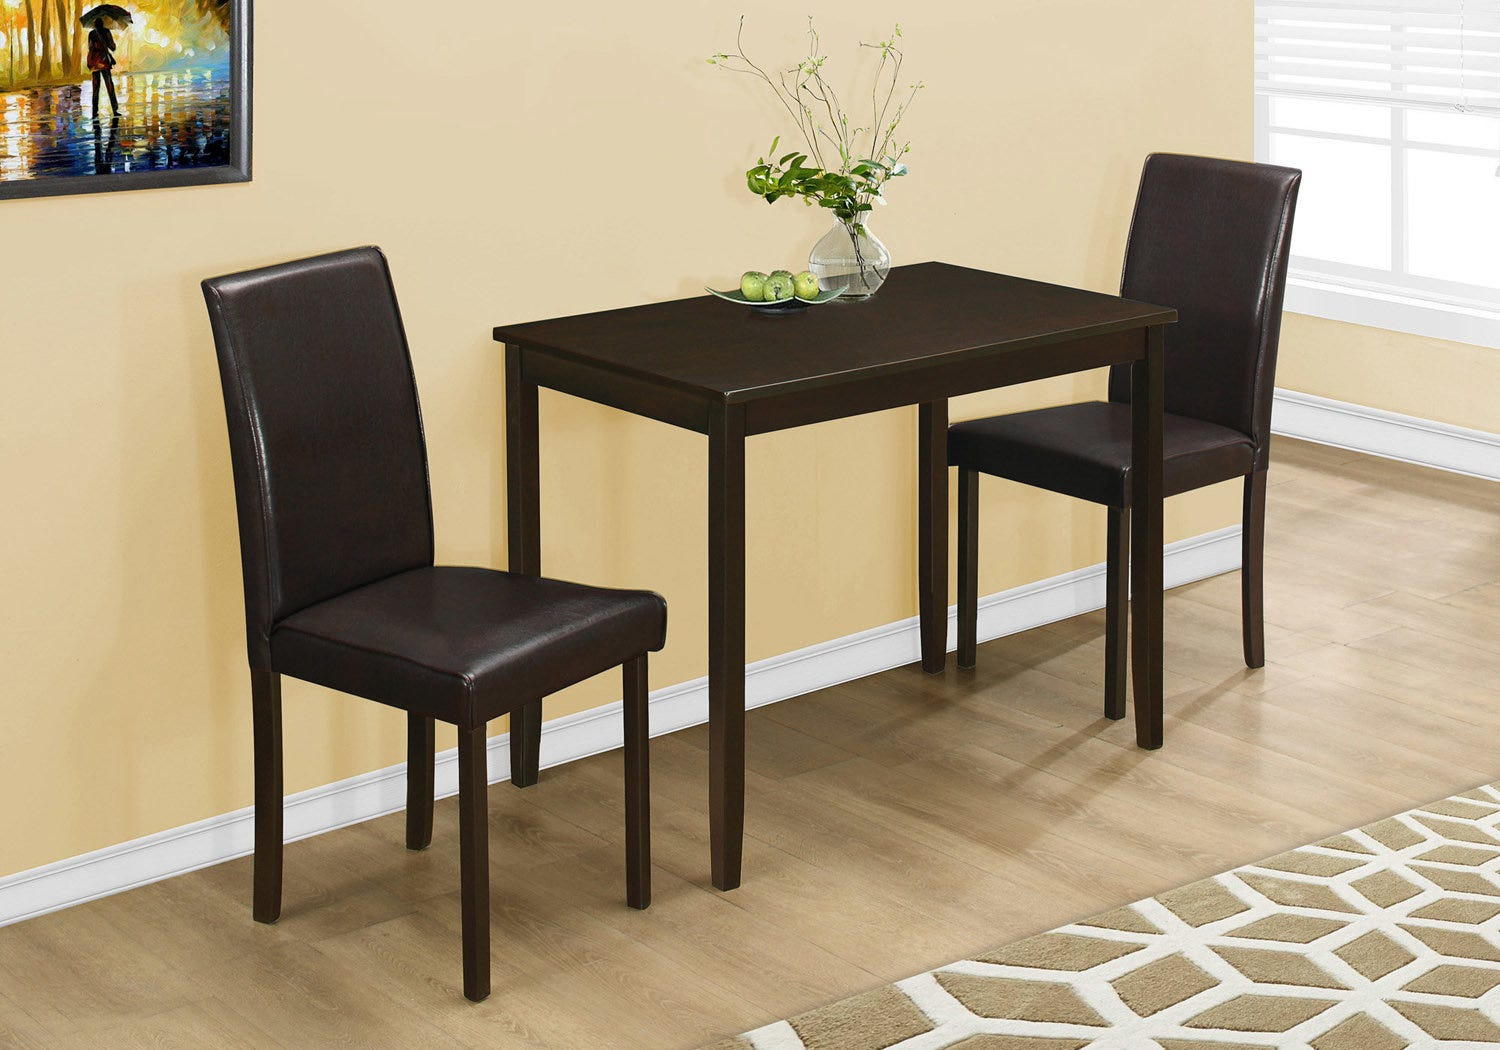 Dining Set 3pcs Set Cappuccino Brown Parson Chairs